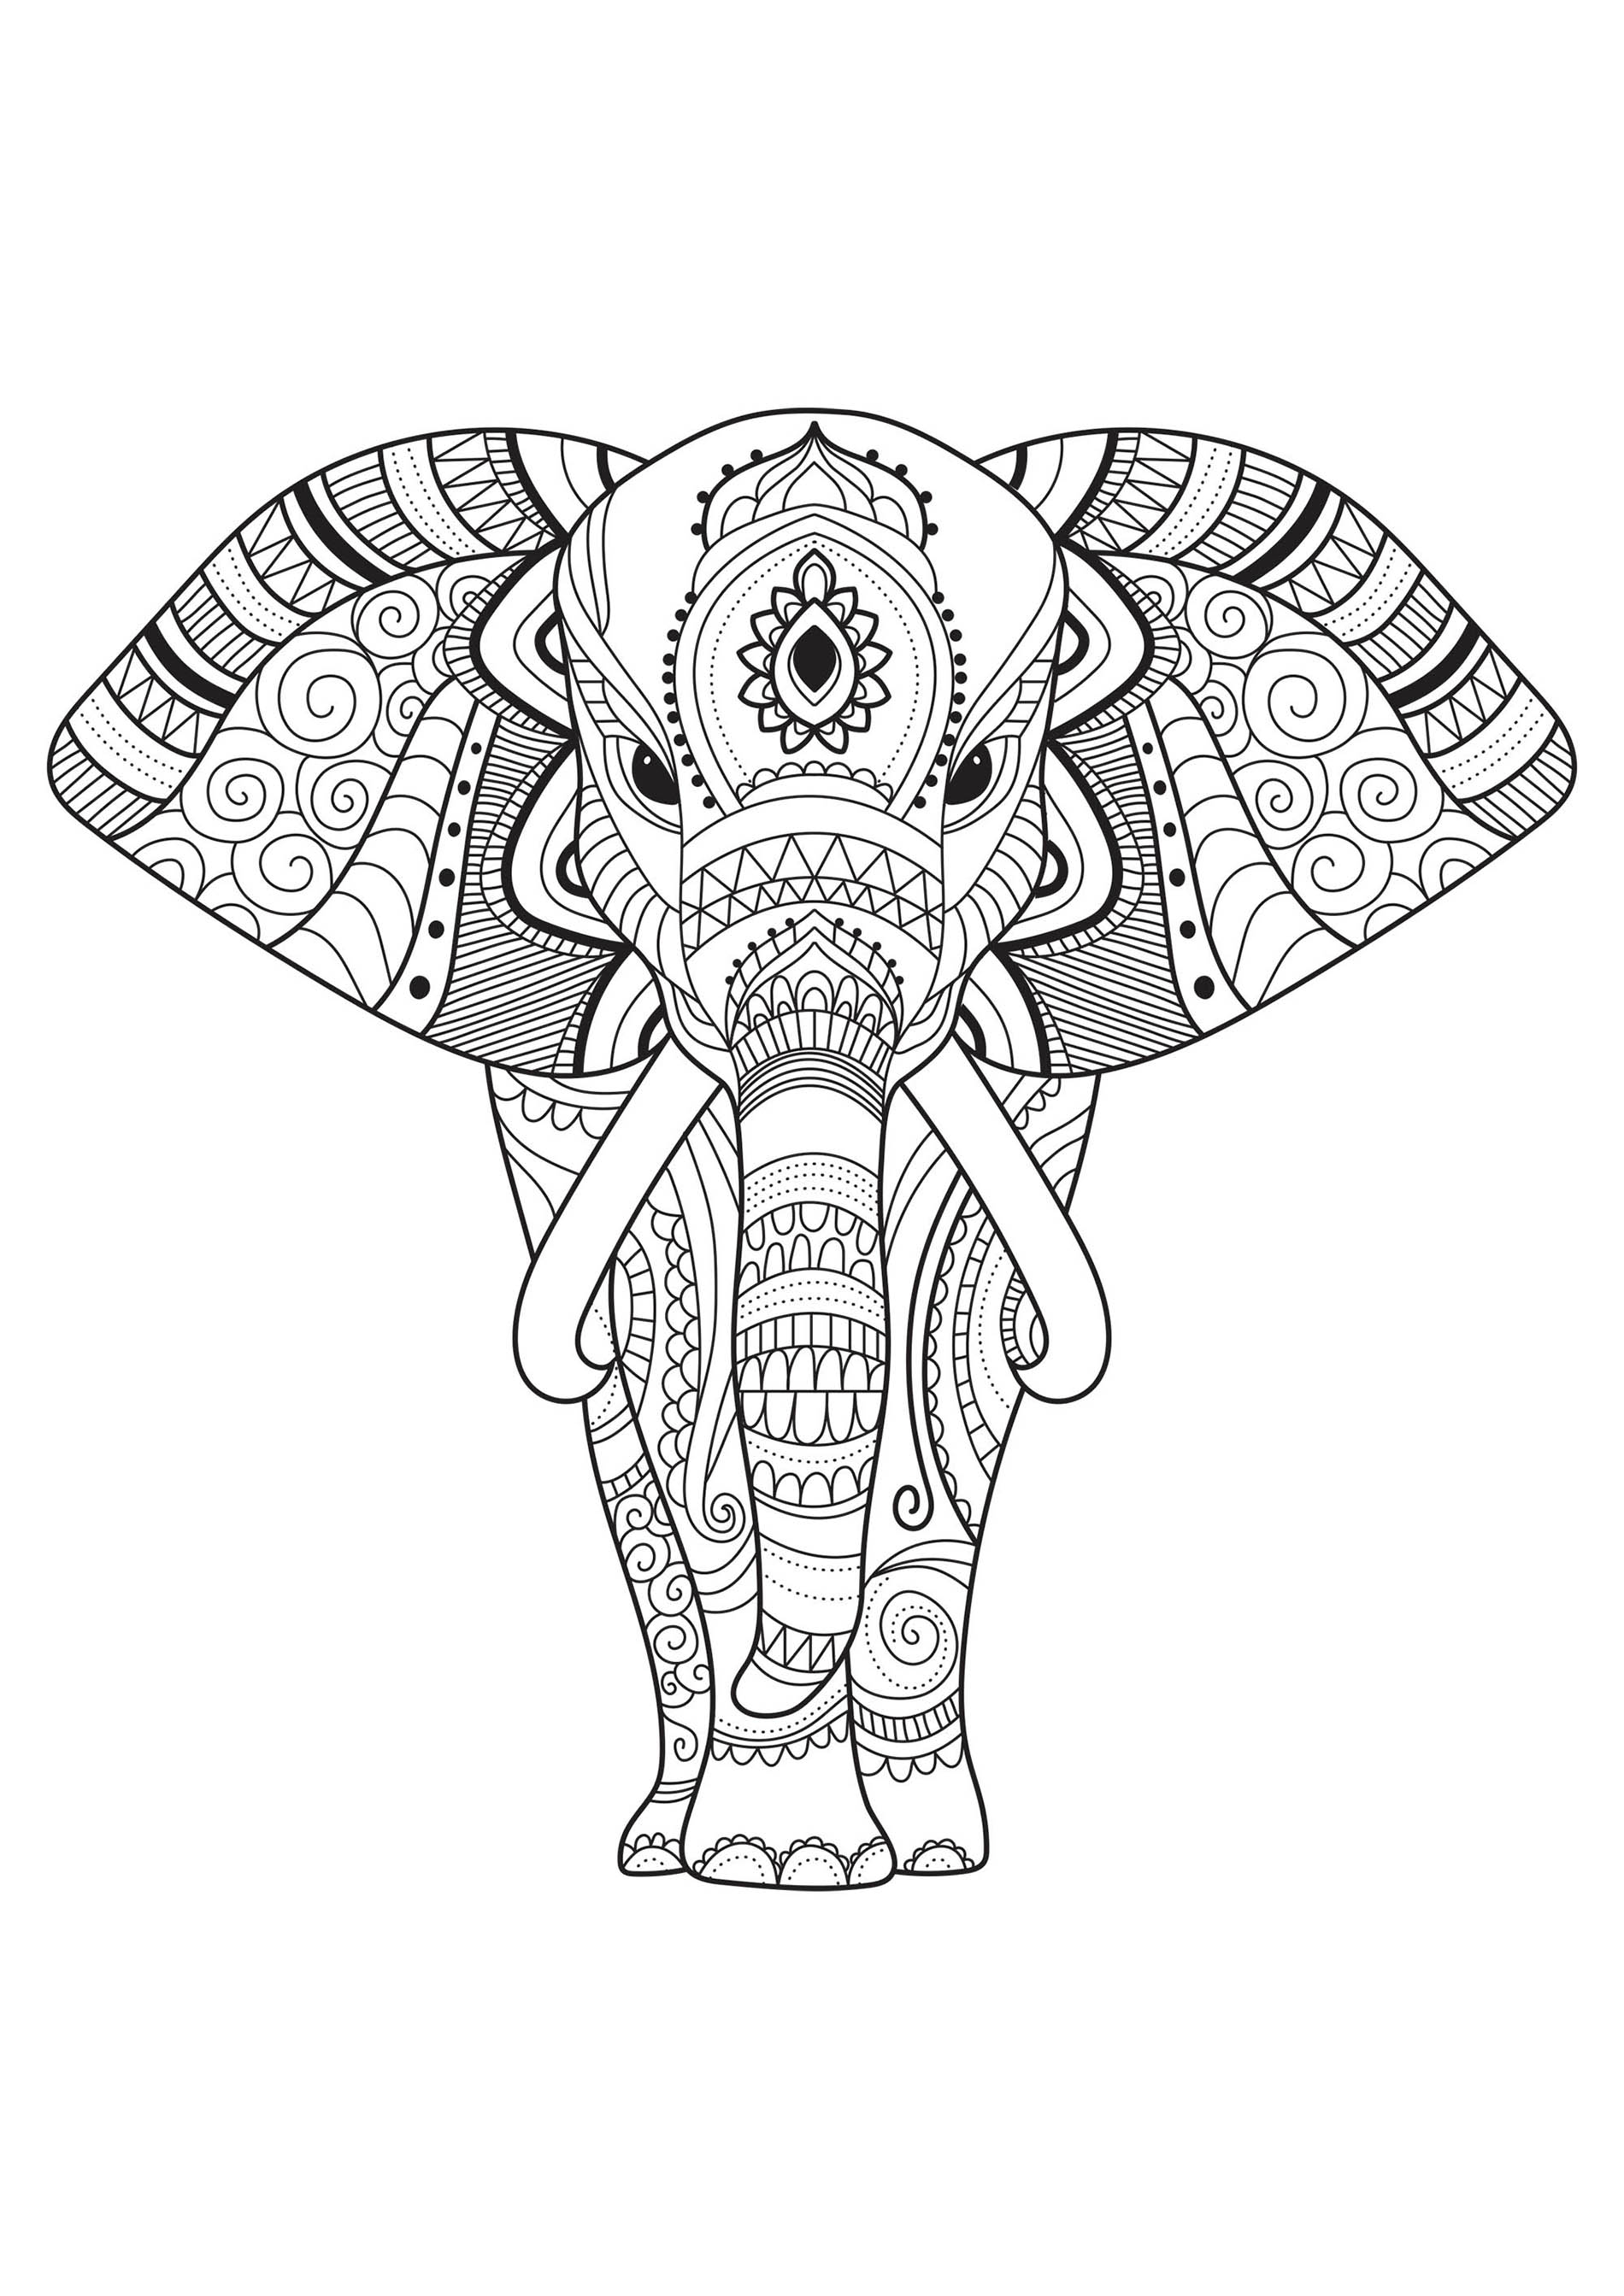 Elephants To Color For Children Elephants Kids Coloring Pages